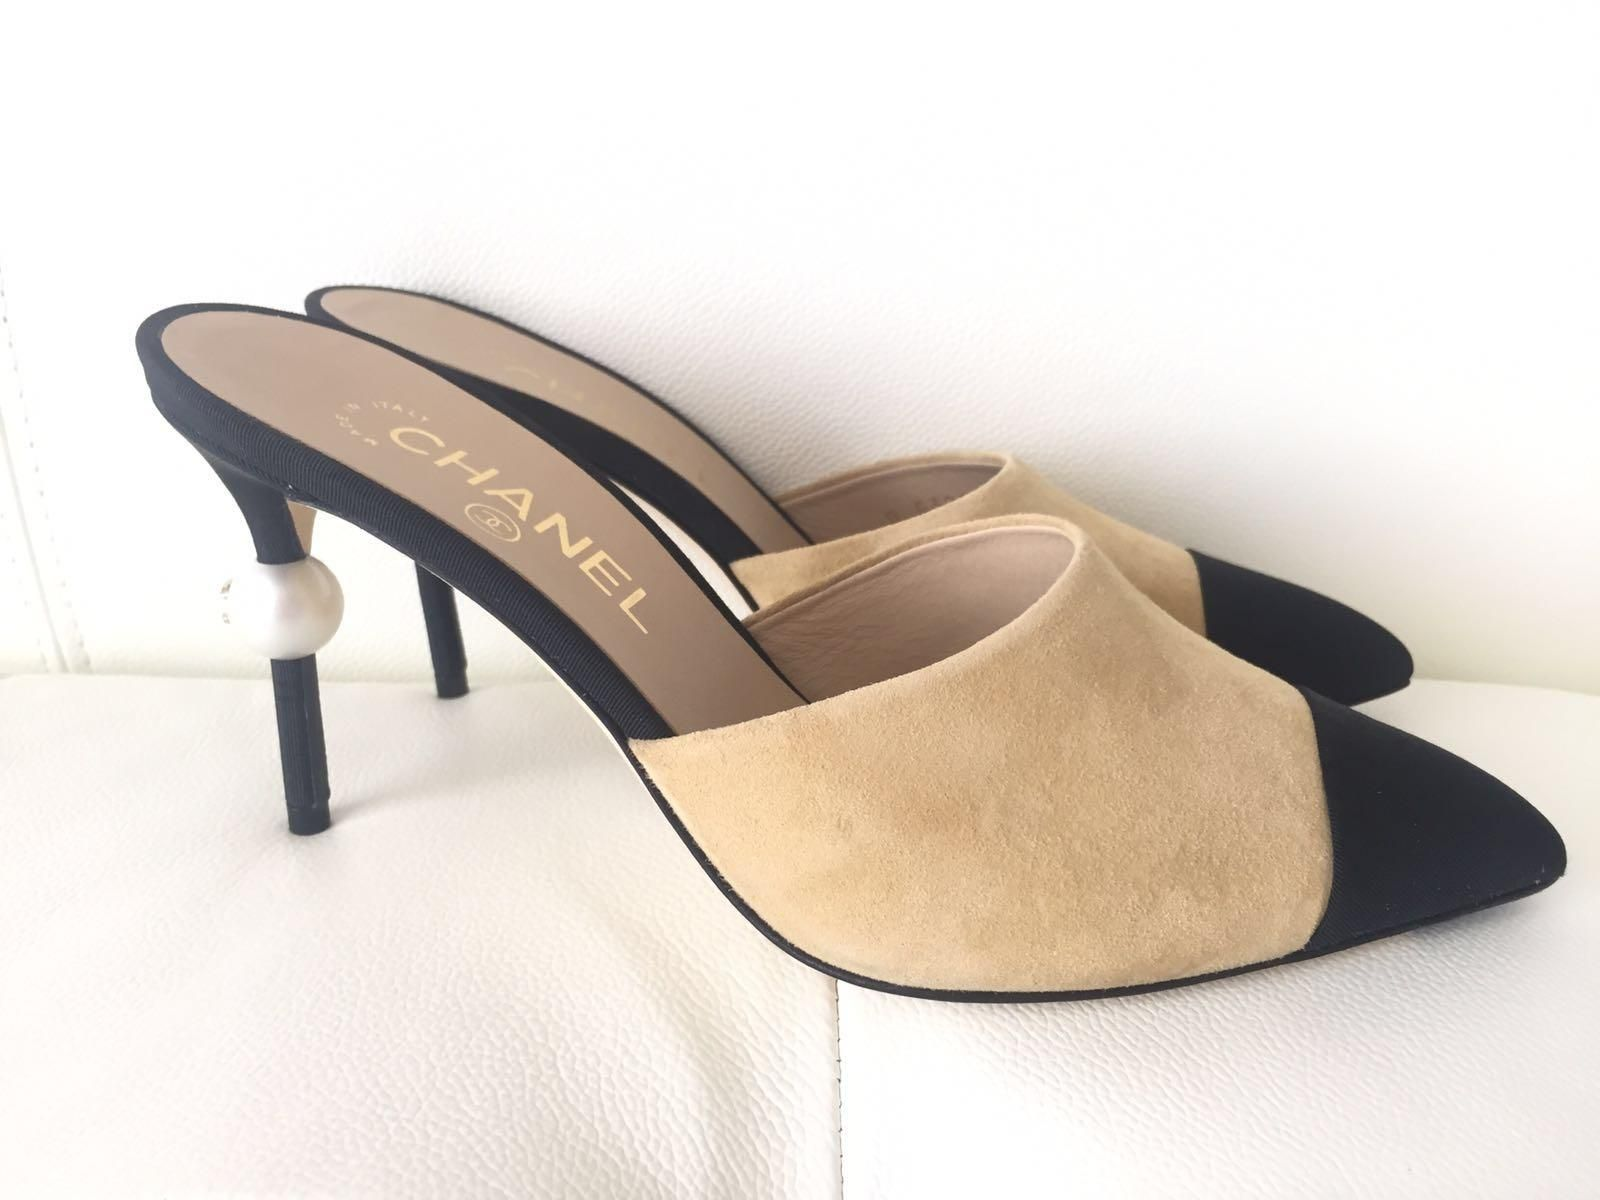 5d906ee5b4ff2 Chanel Runway Suede Heels Pearl Pumps 35 BEIGE Mules. Get the must-have  mules of this season! These Chanel Runway Suede Heels Pearl…